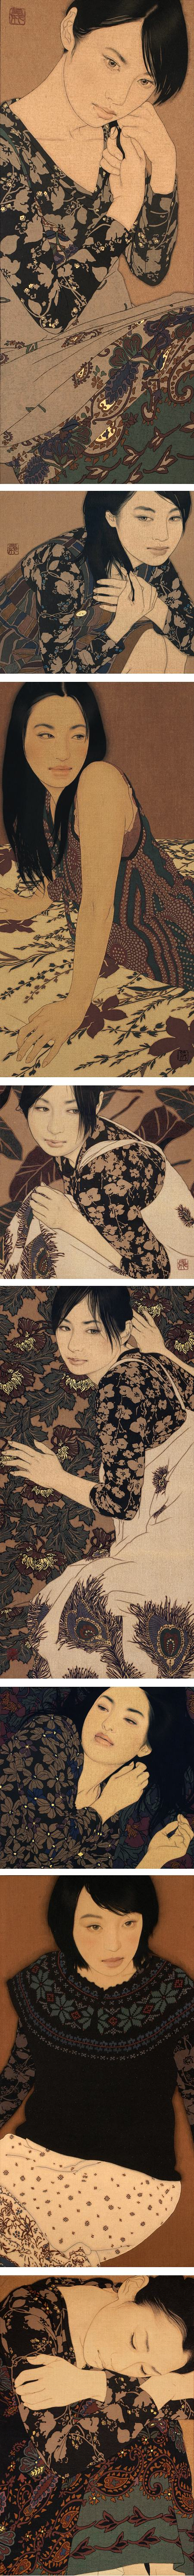 Ikenaga Yasunari, portraits of women in soot ink, mineral pigments, Menso brush